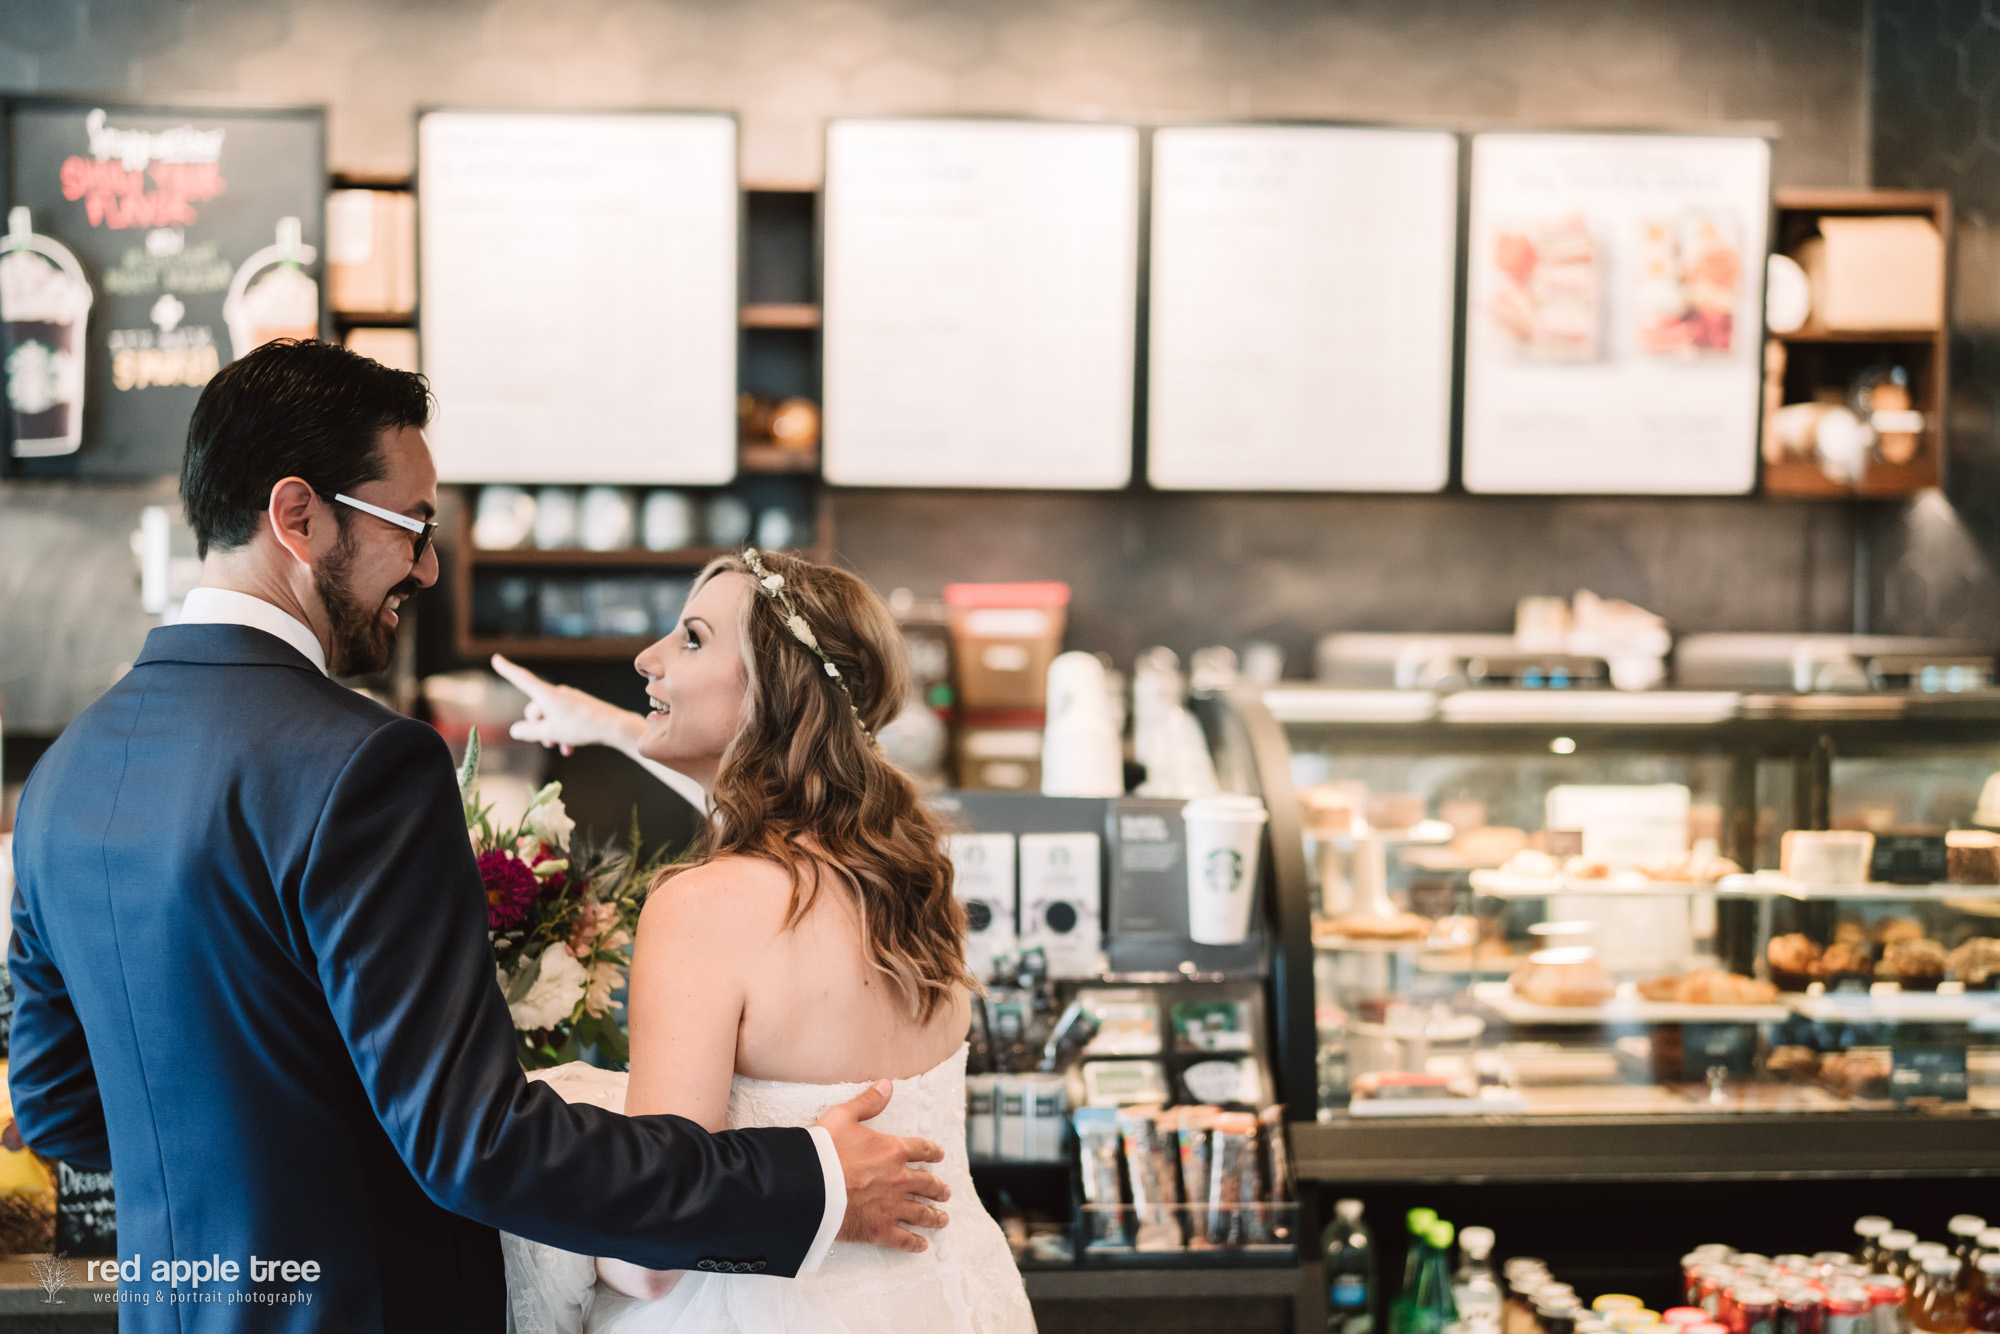 What's a complete wedding day without a quick stop by Starbucks?!?